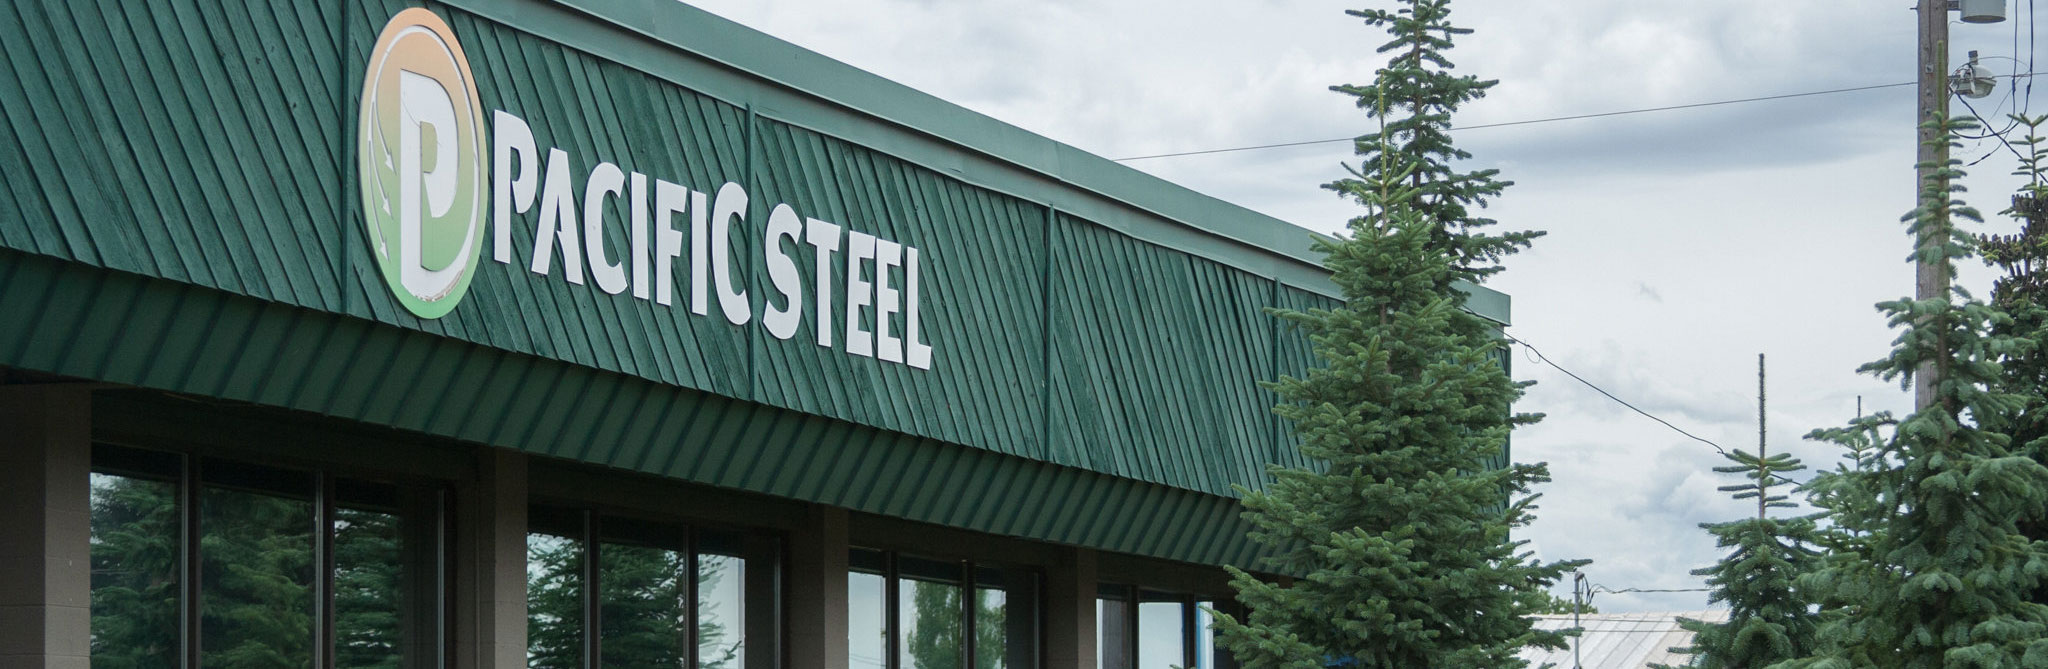 outside of pacific steel and recycling center